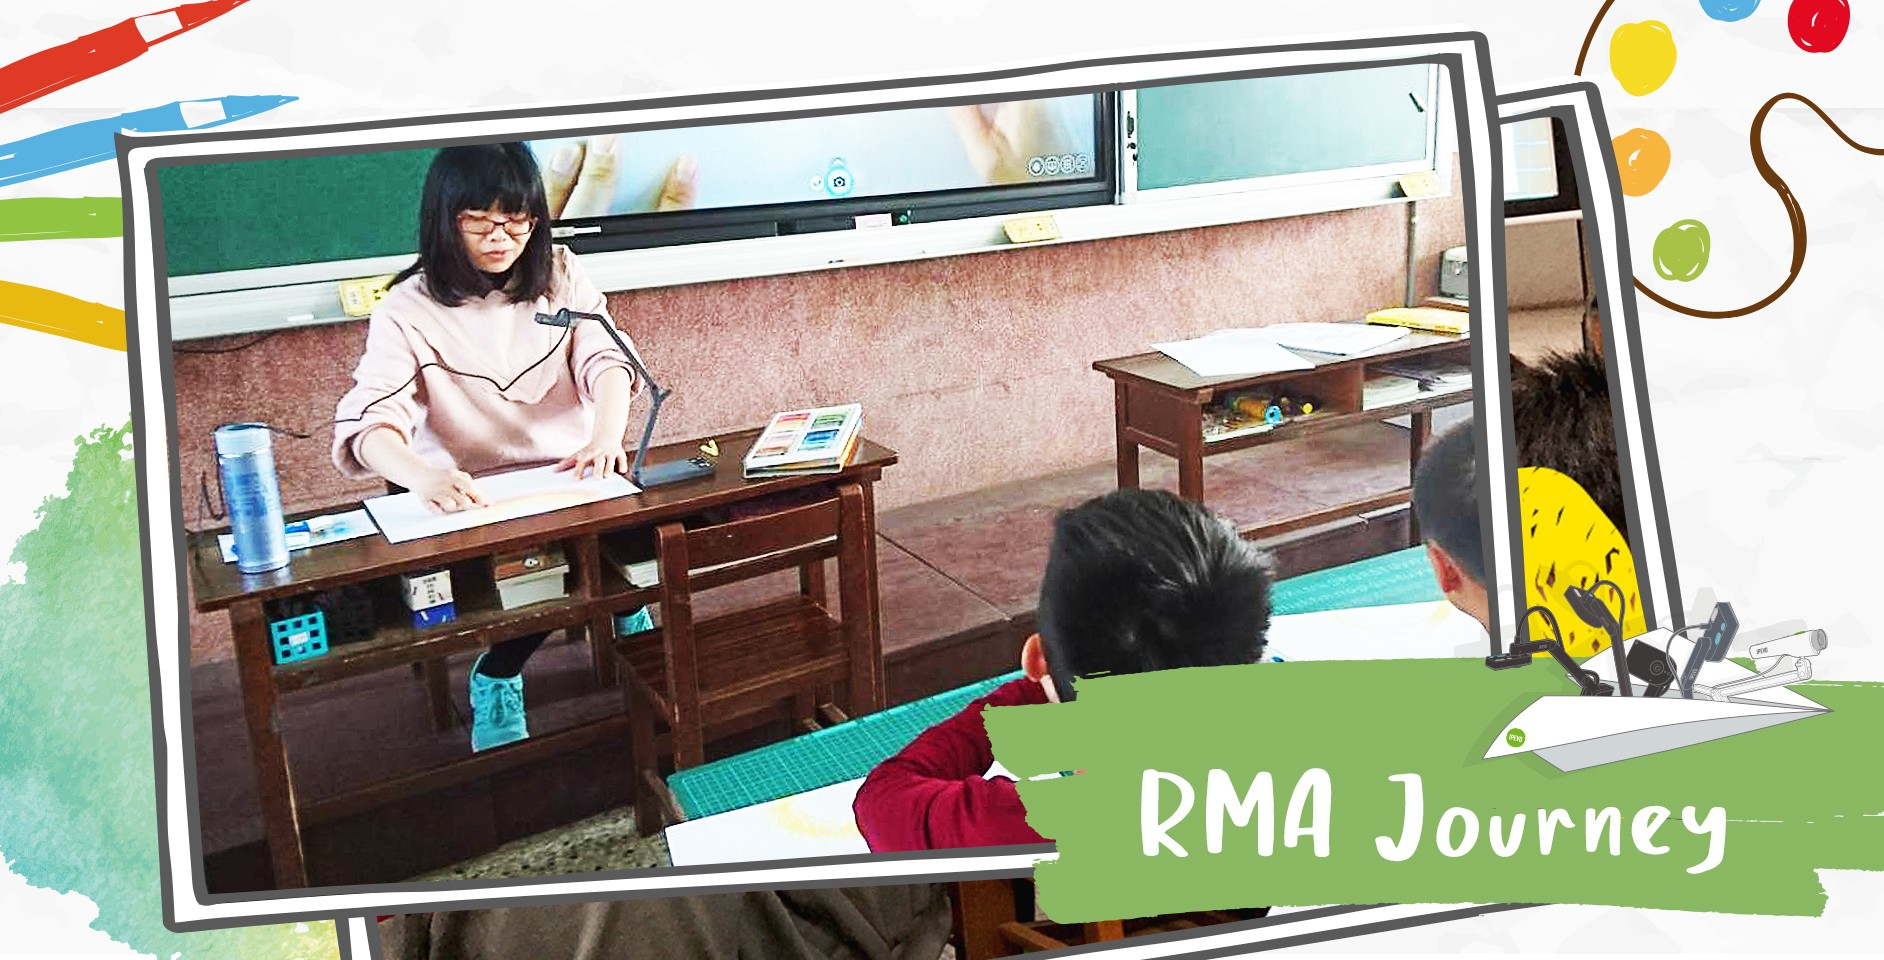 IPEVO's RMA Journey Part Two: Utilizing Document Cameras for Teaching Arts & Crafts